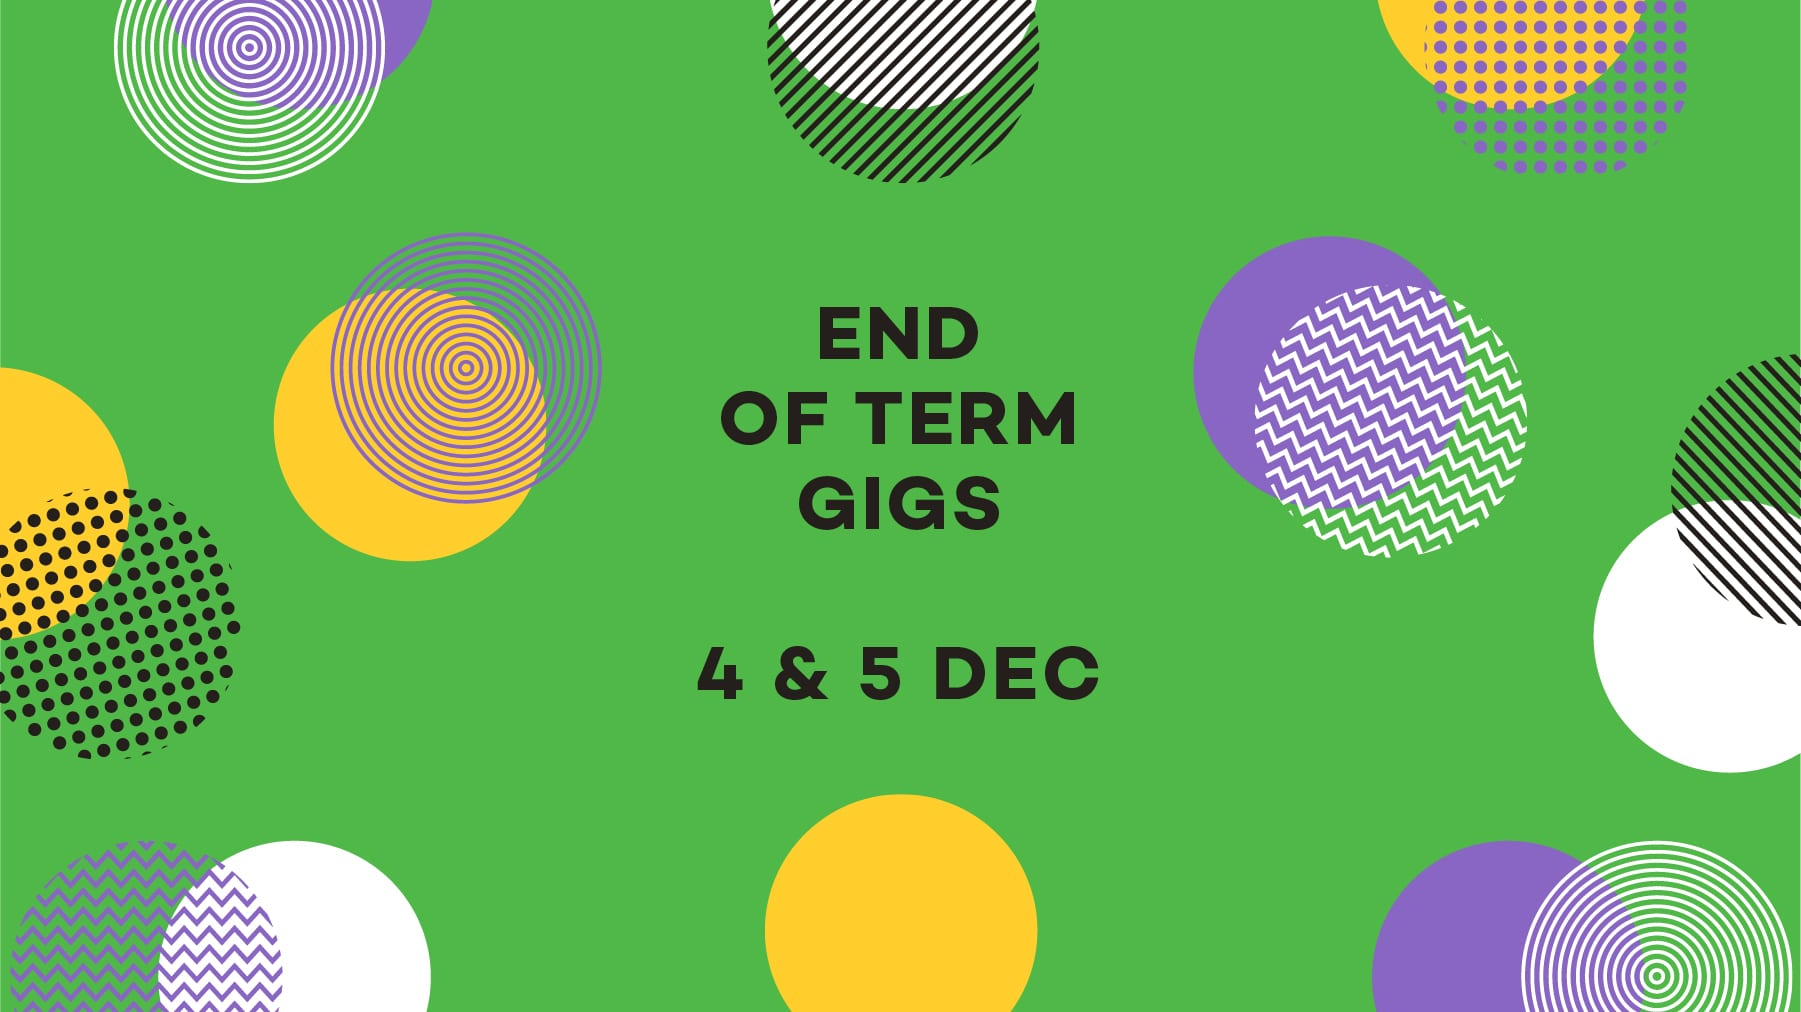 End of Term Gigs